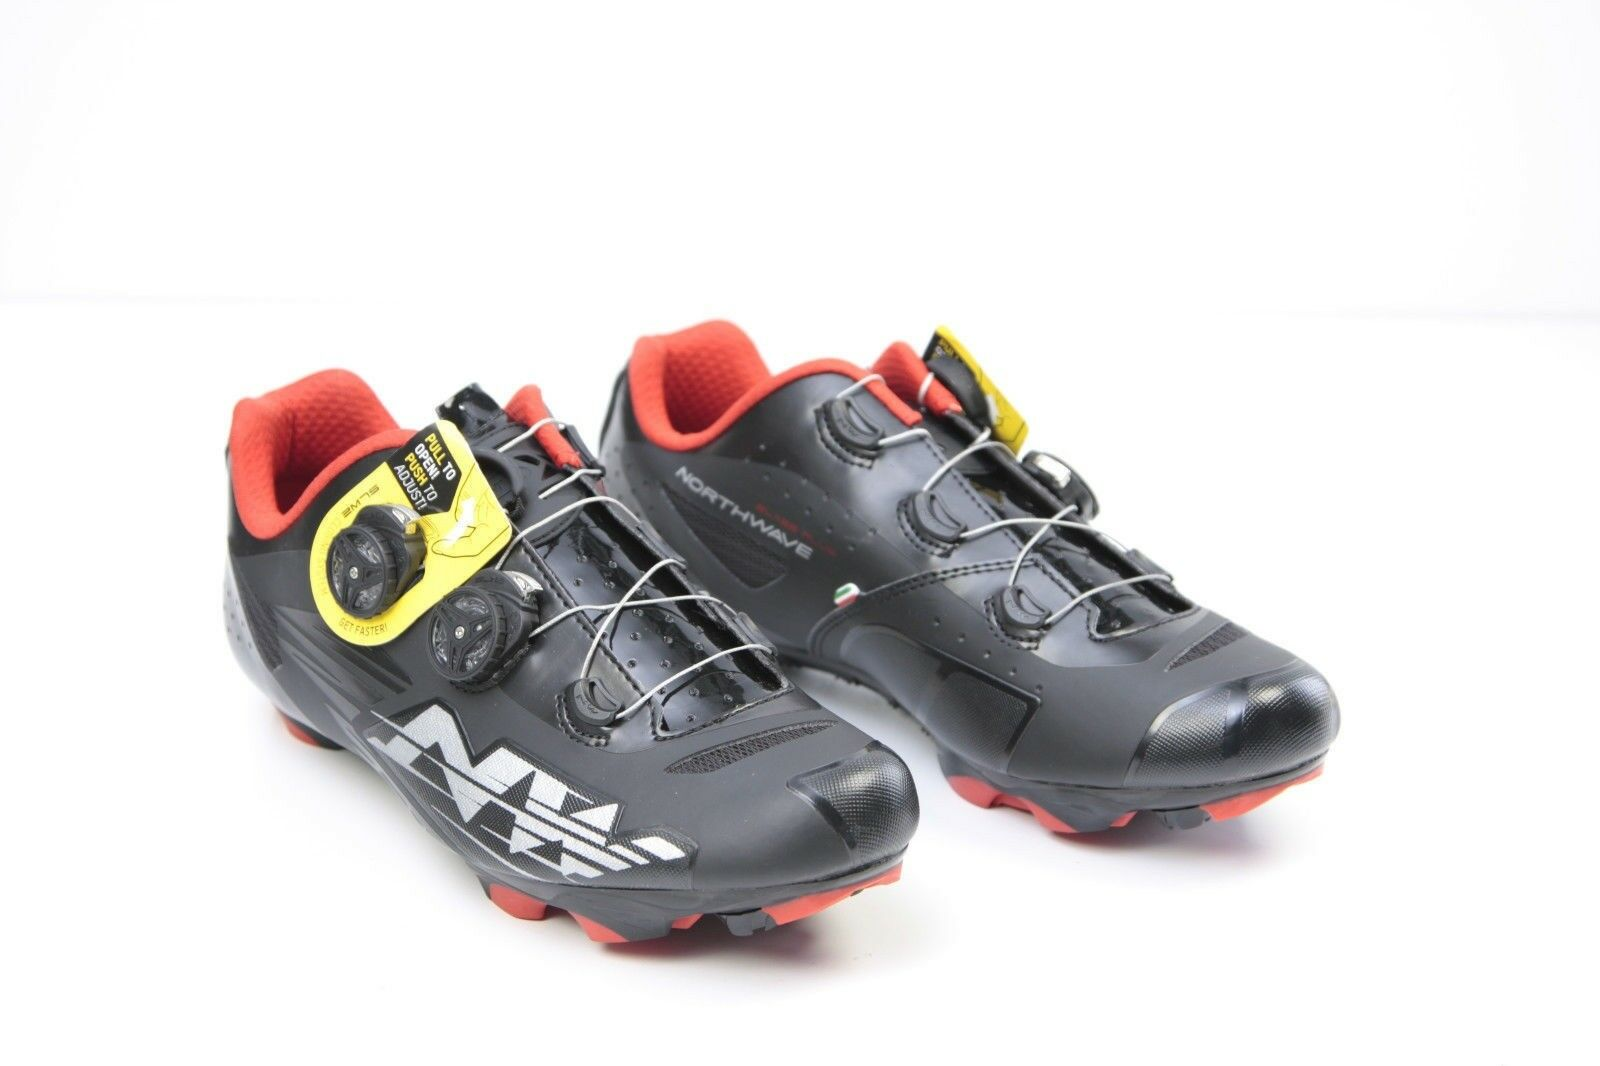 New NORTHWAVE Blaze Plus Cycling shoes